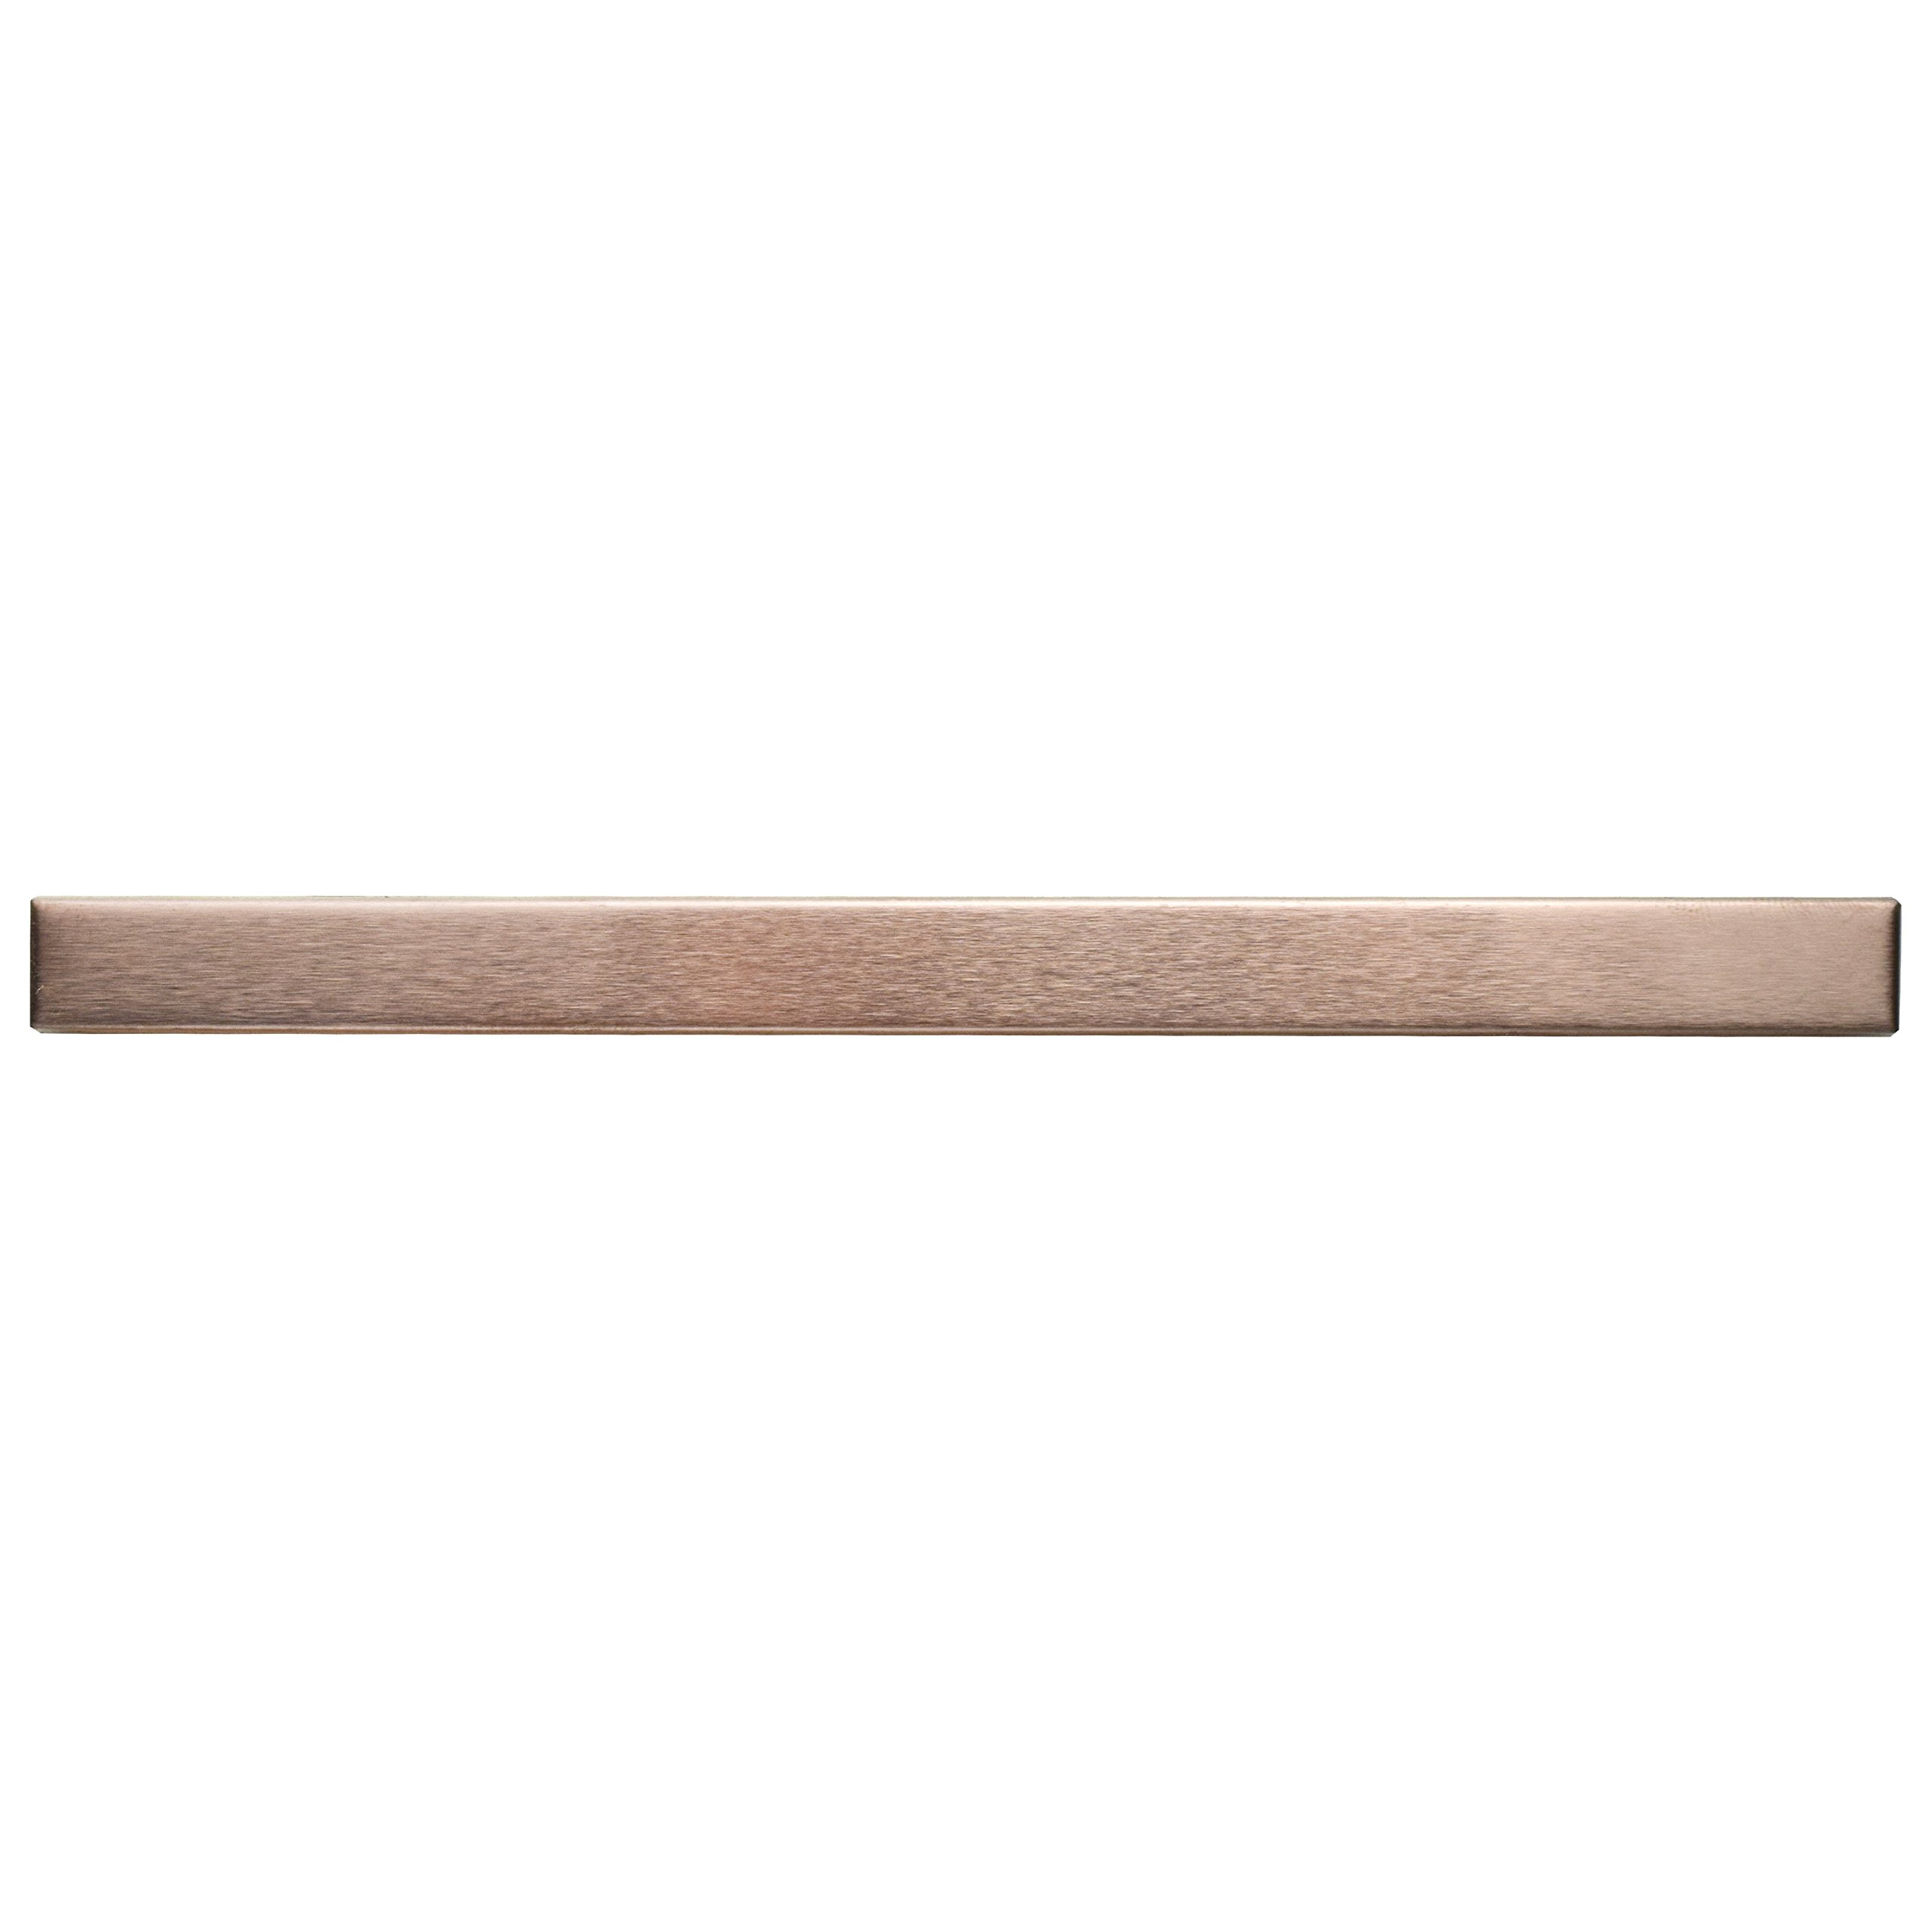 SomerTile MITSSCST Allia Stick Stainless Steel Over Porcelain Wall Trim Tile, 3/8'' x 5 3/4'', Copper